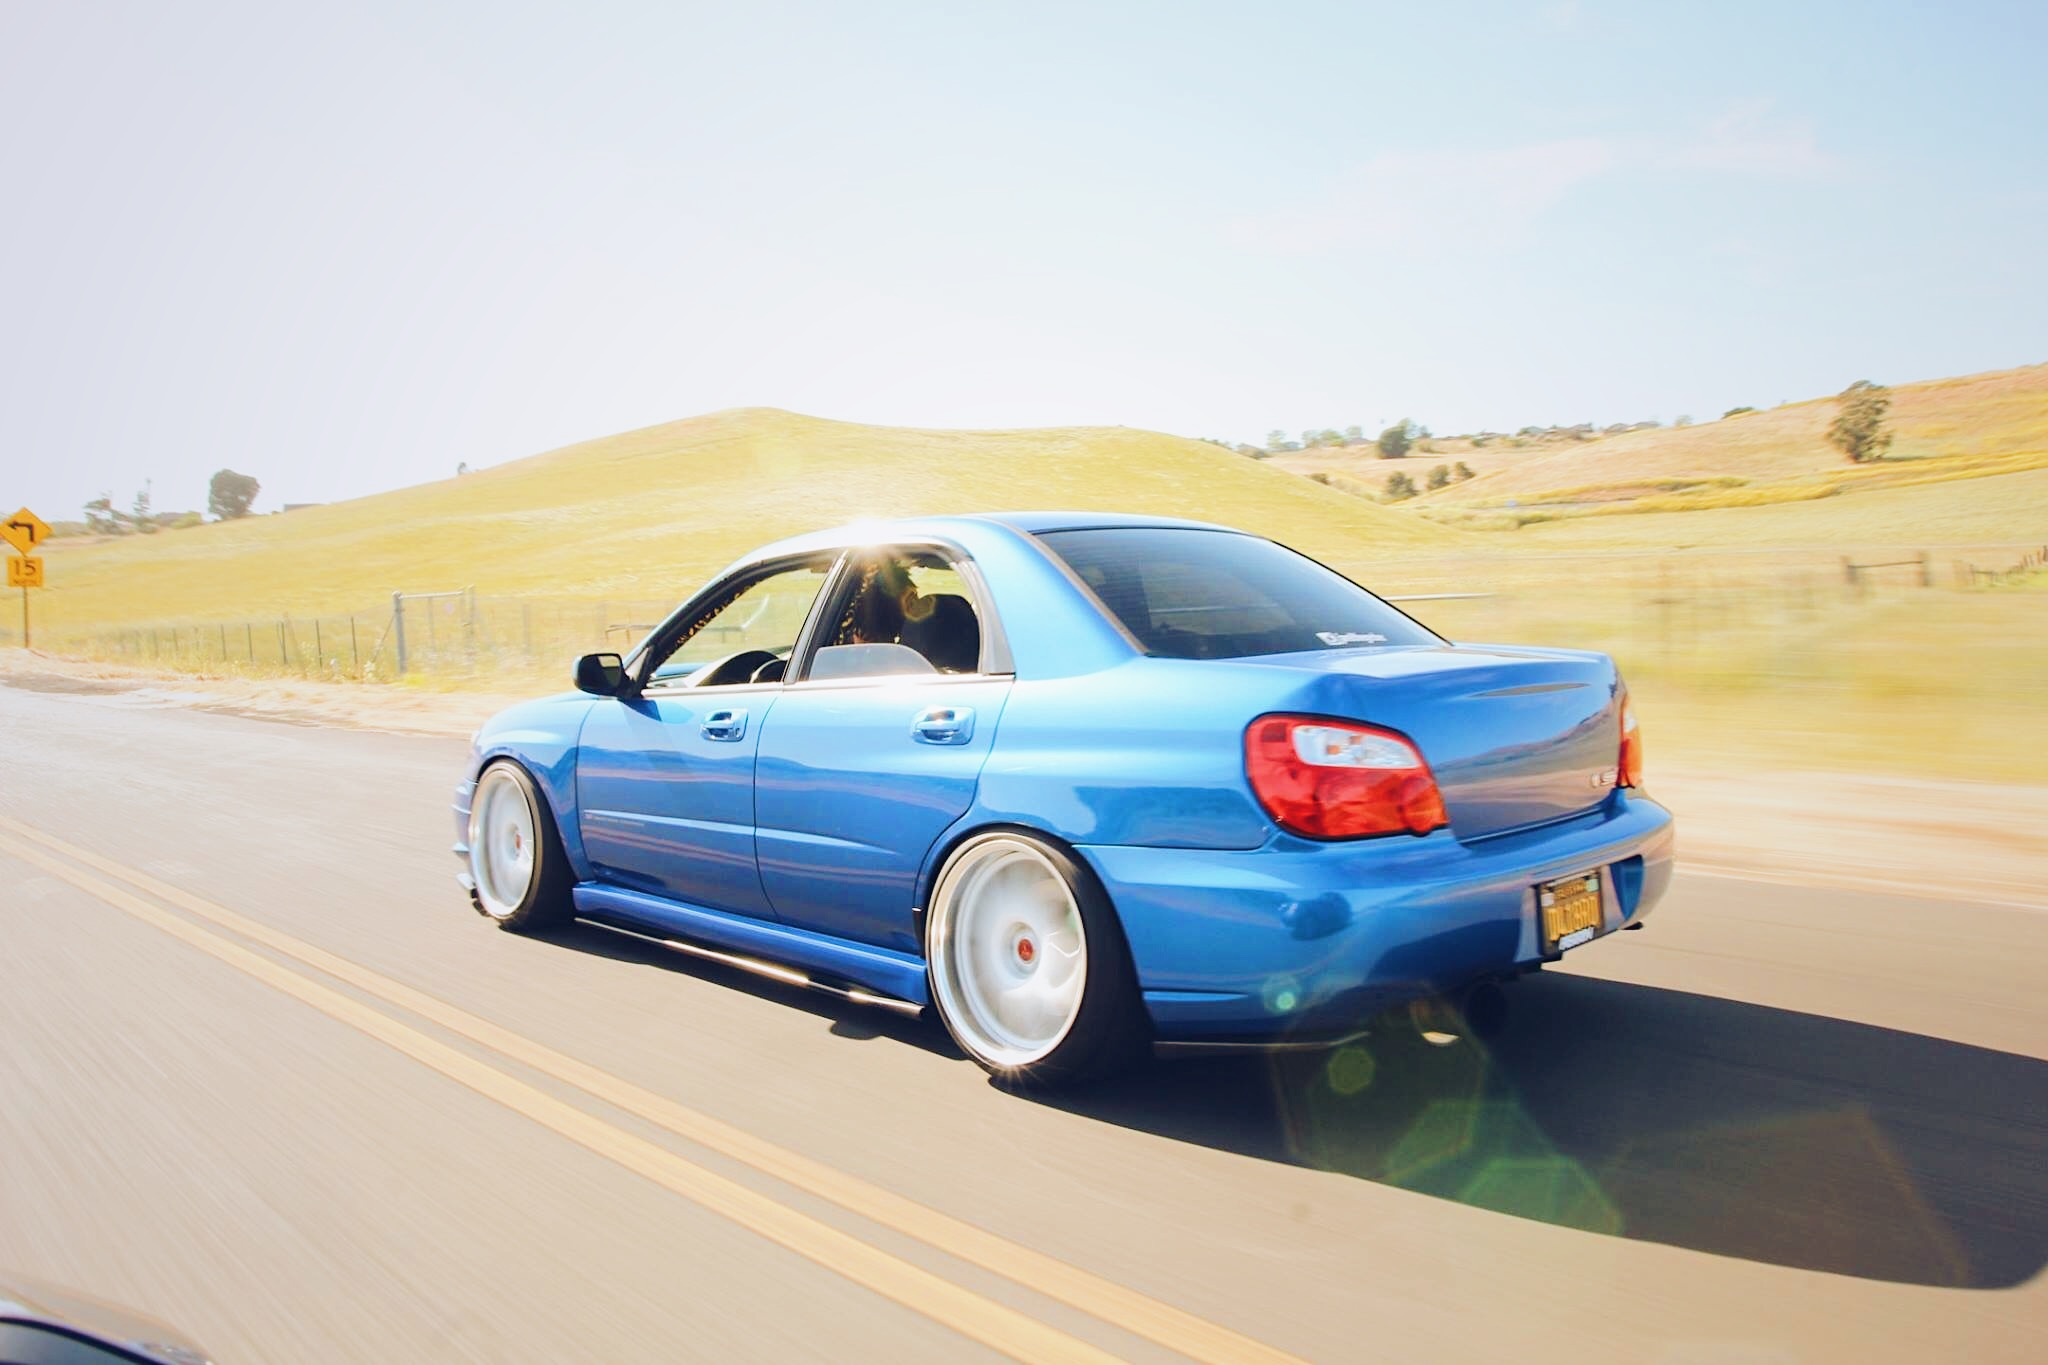 Anthony Brewer 2004 Subaru WRX STI TBGLIVE5